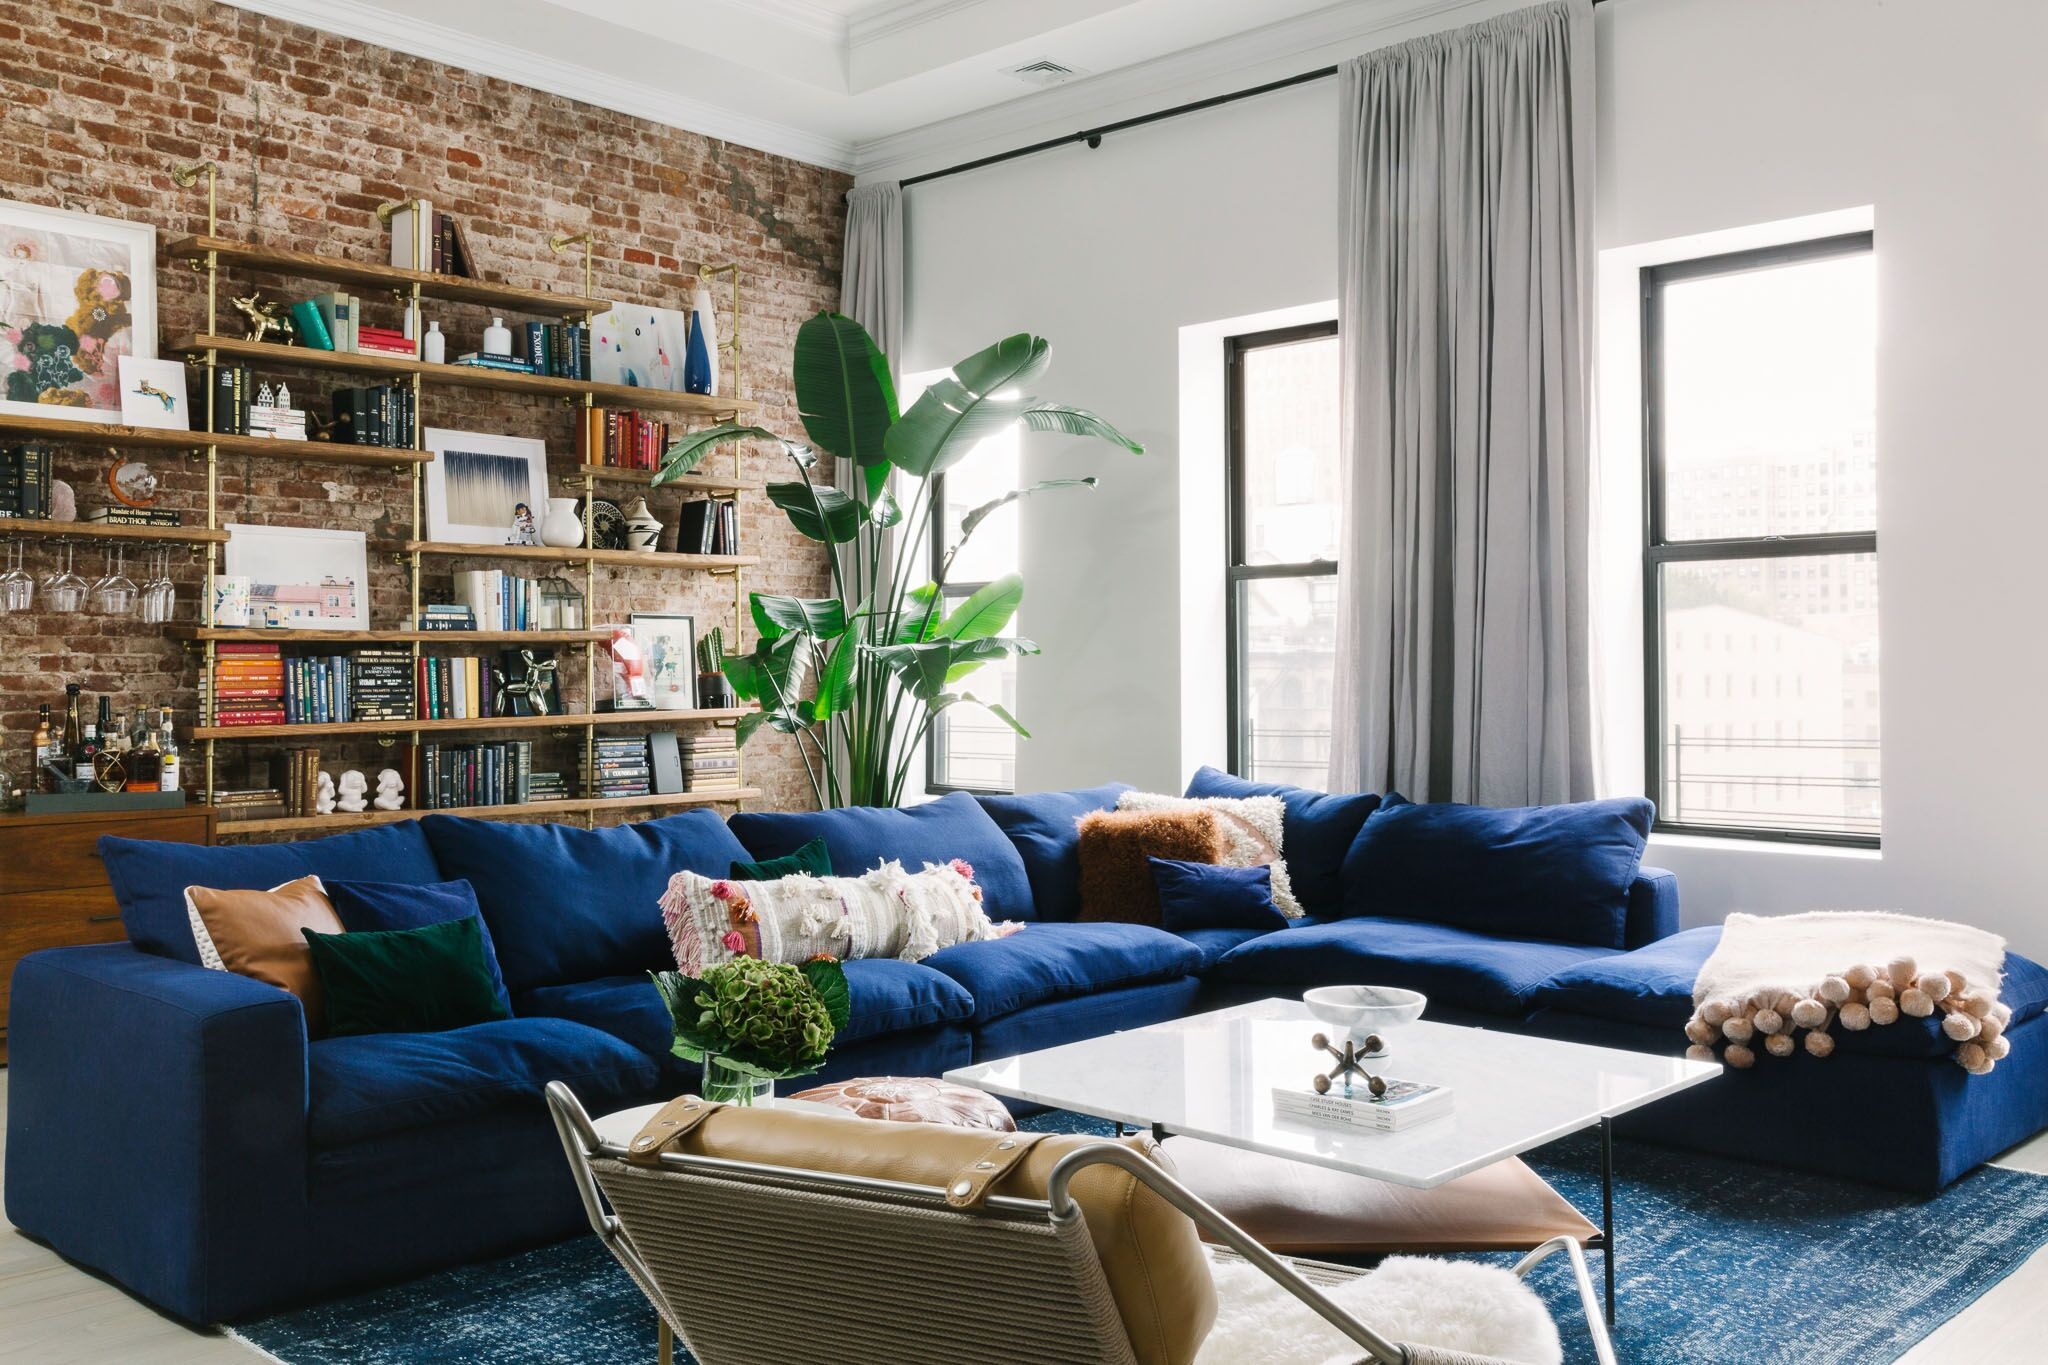 Top 10 Interior design tips for 2019